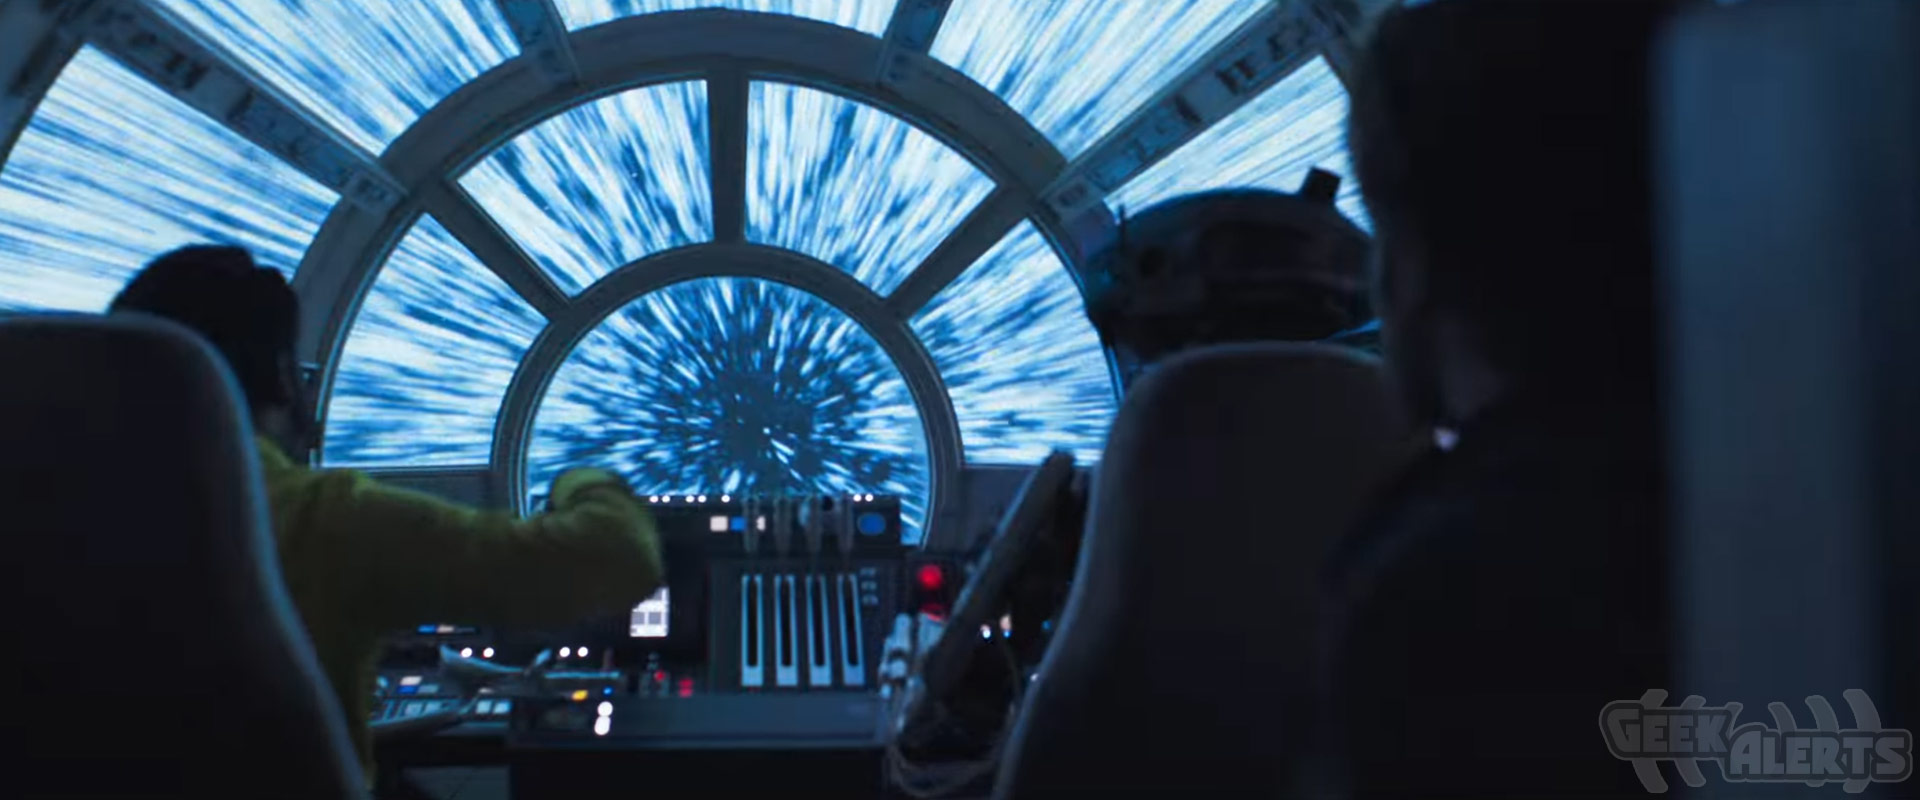 Solo: A Star Wars Story Official Teaser Trailer - photo#37